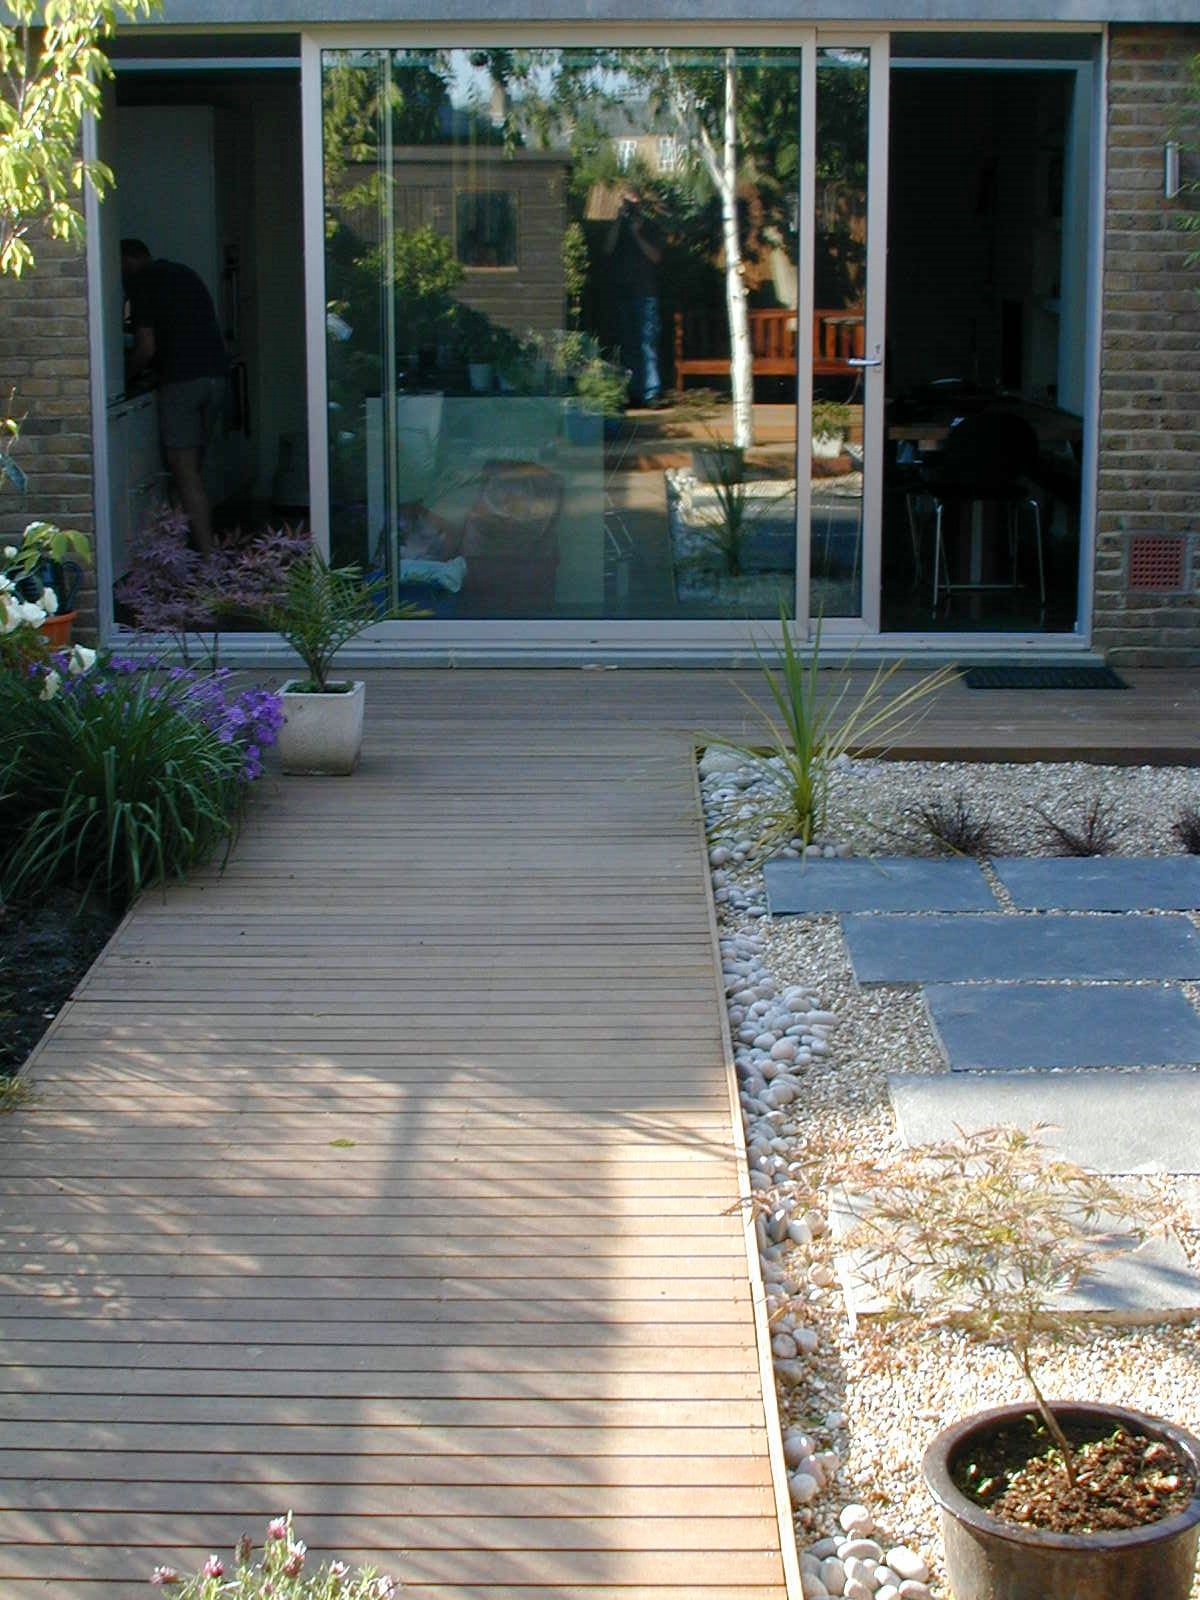 london decking deck builders installers hardwood softwood garden design (59)